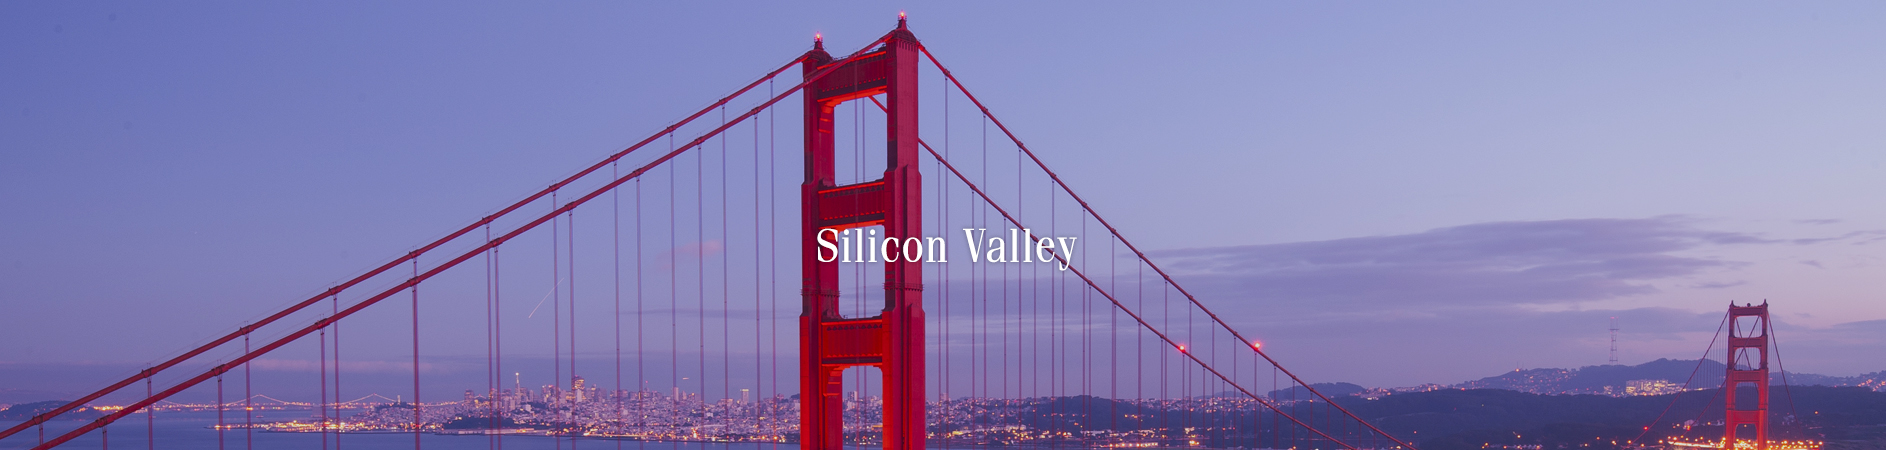 Silicon Valley Investments